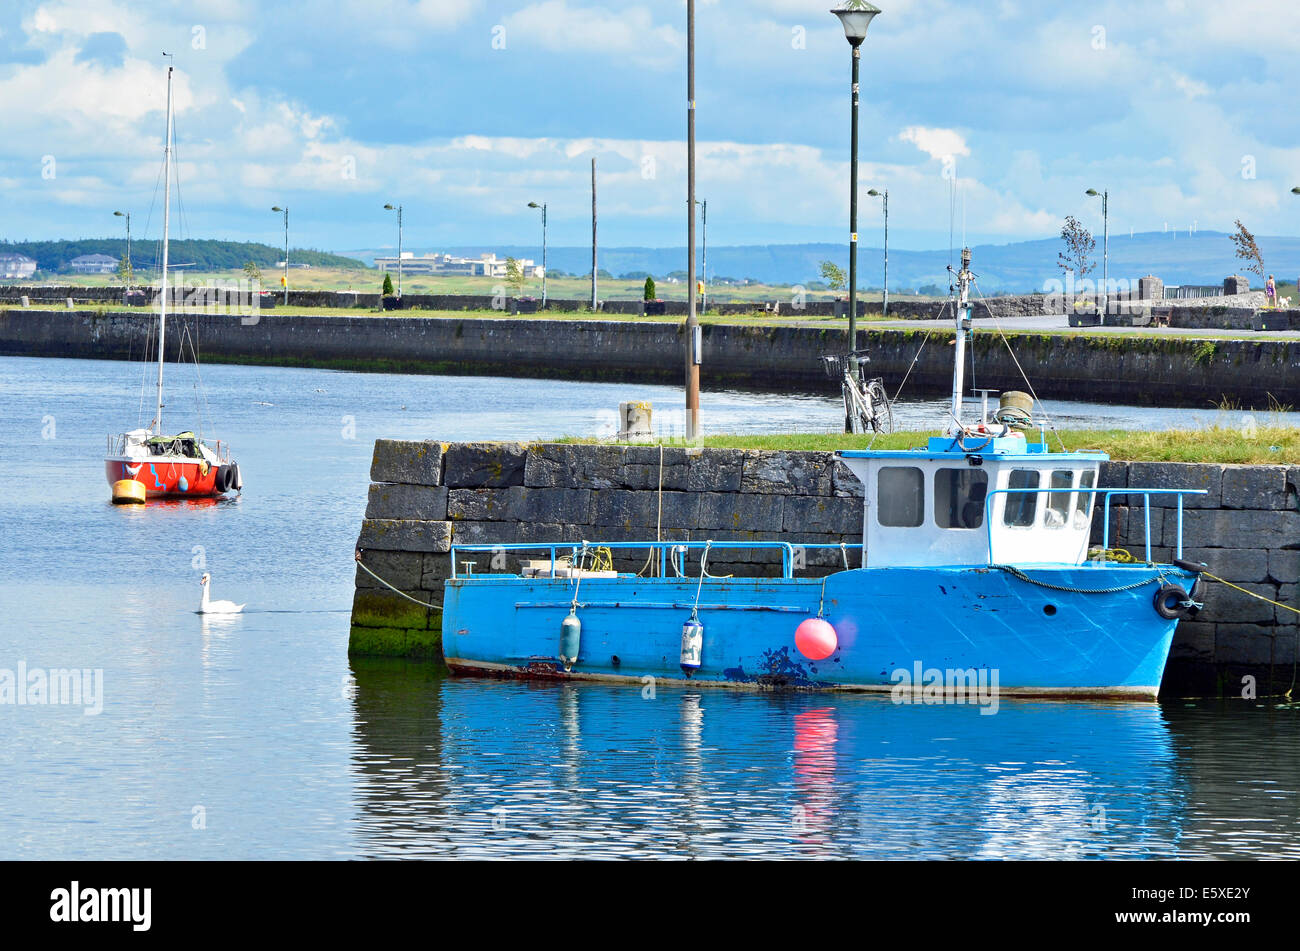 Boats moored at the seaward end of the Claddagh Basin, the old harbour area of Galway city. - Stock Image